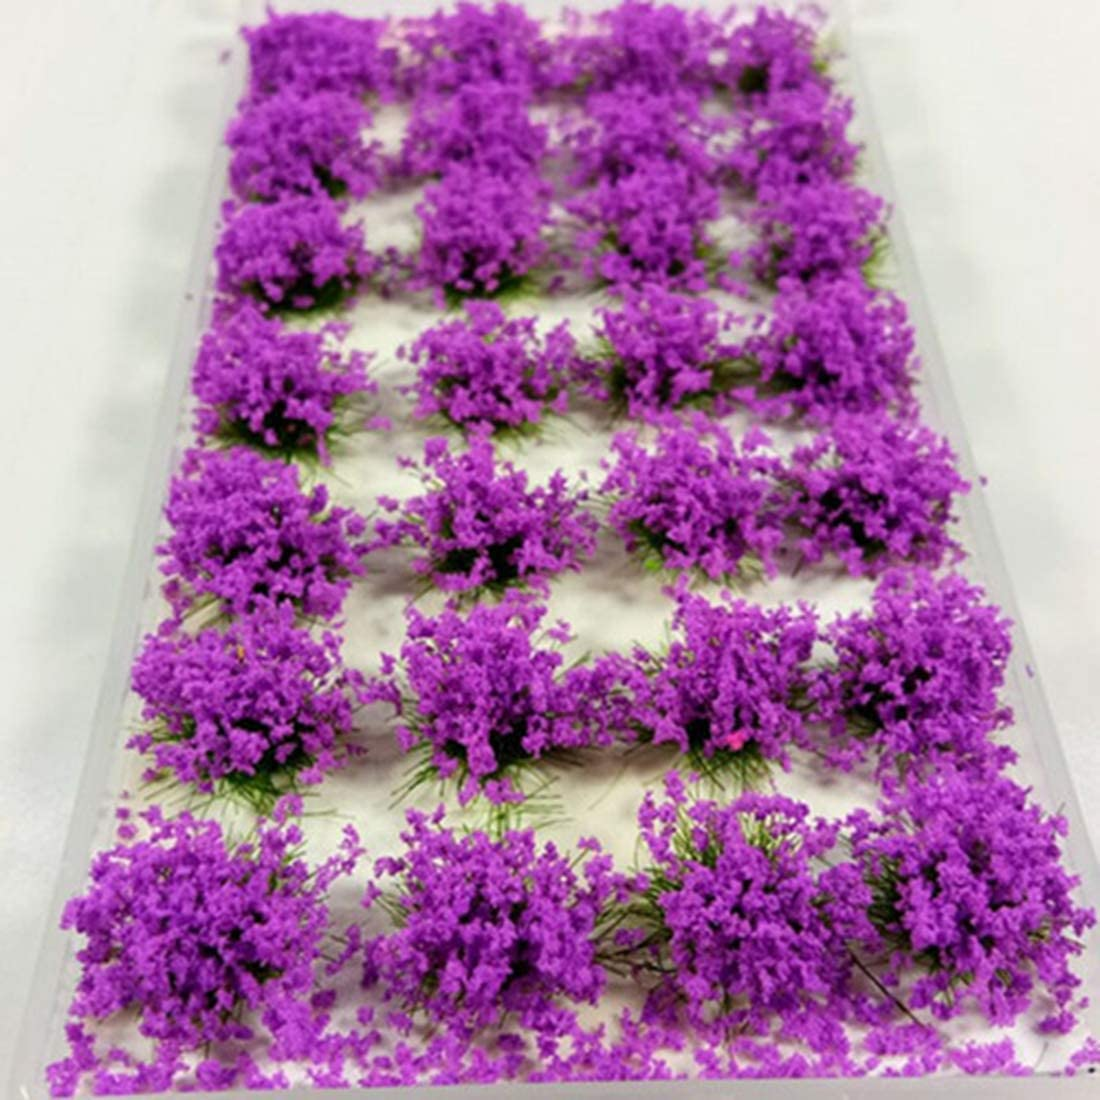 OVERWELL 8mm Self-adhesive Static Grass Flower Tufts x 28 Railway Modelling